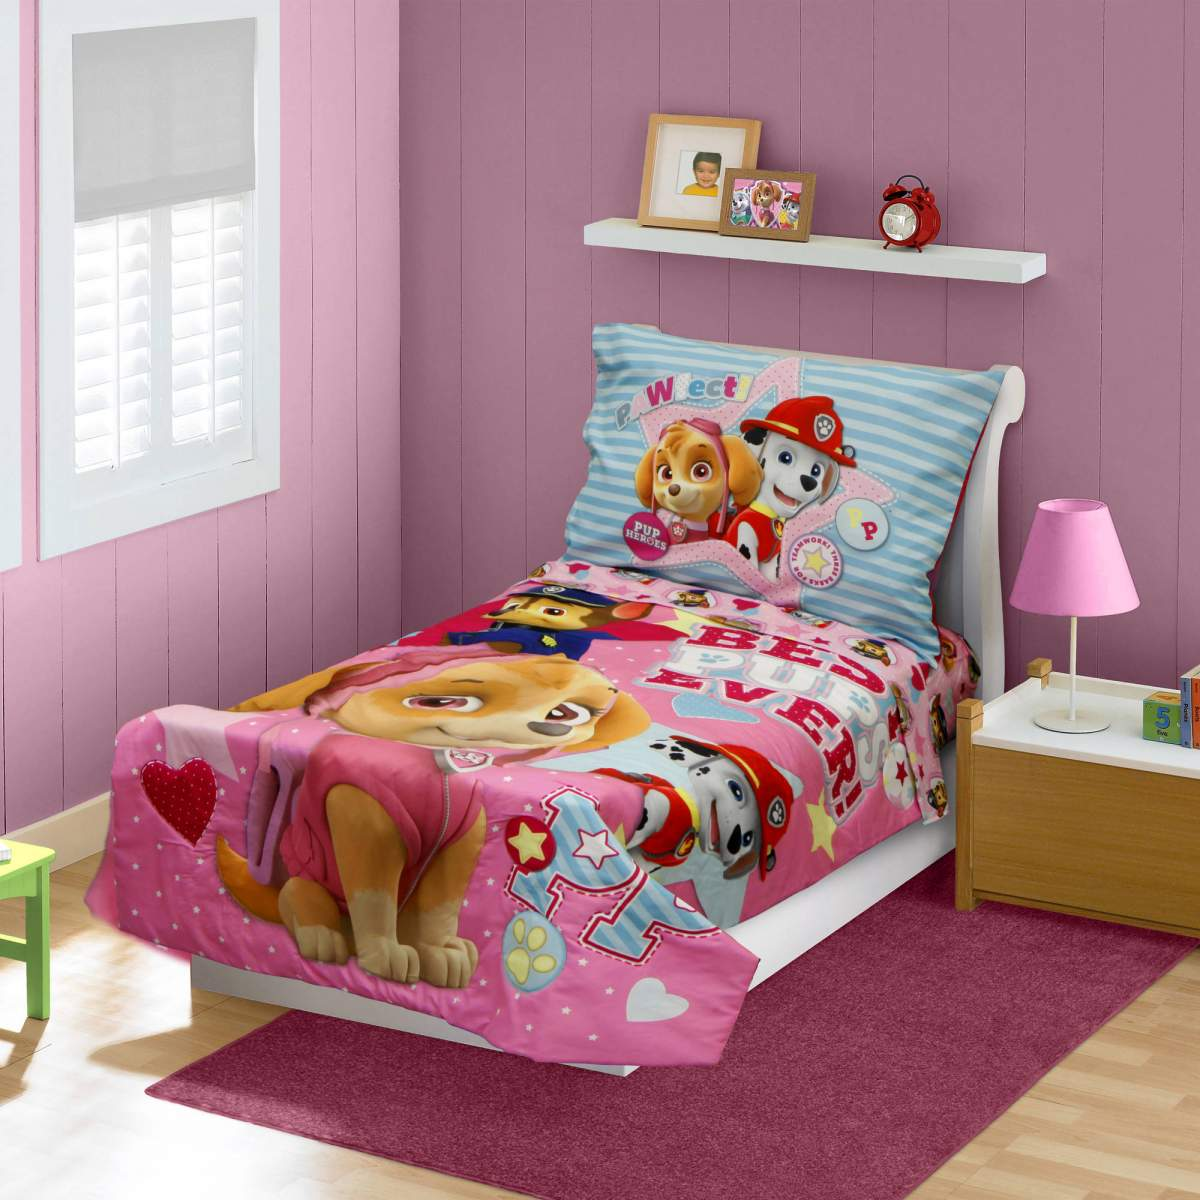 Toys R Us Bedding Bubble Guppies Bed Set